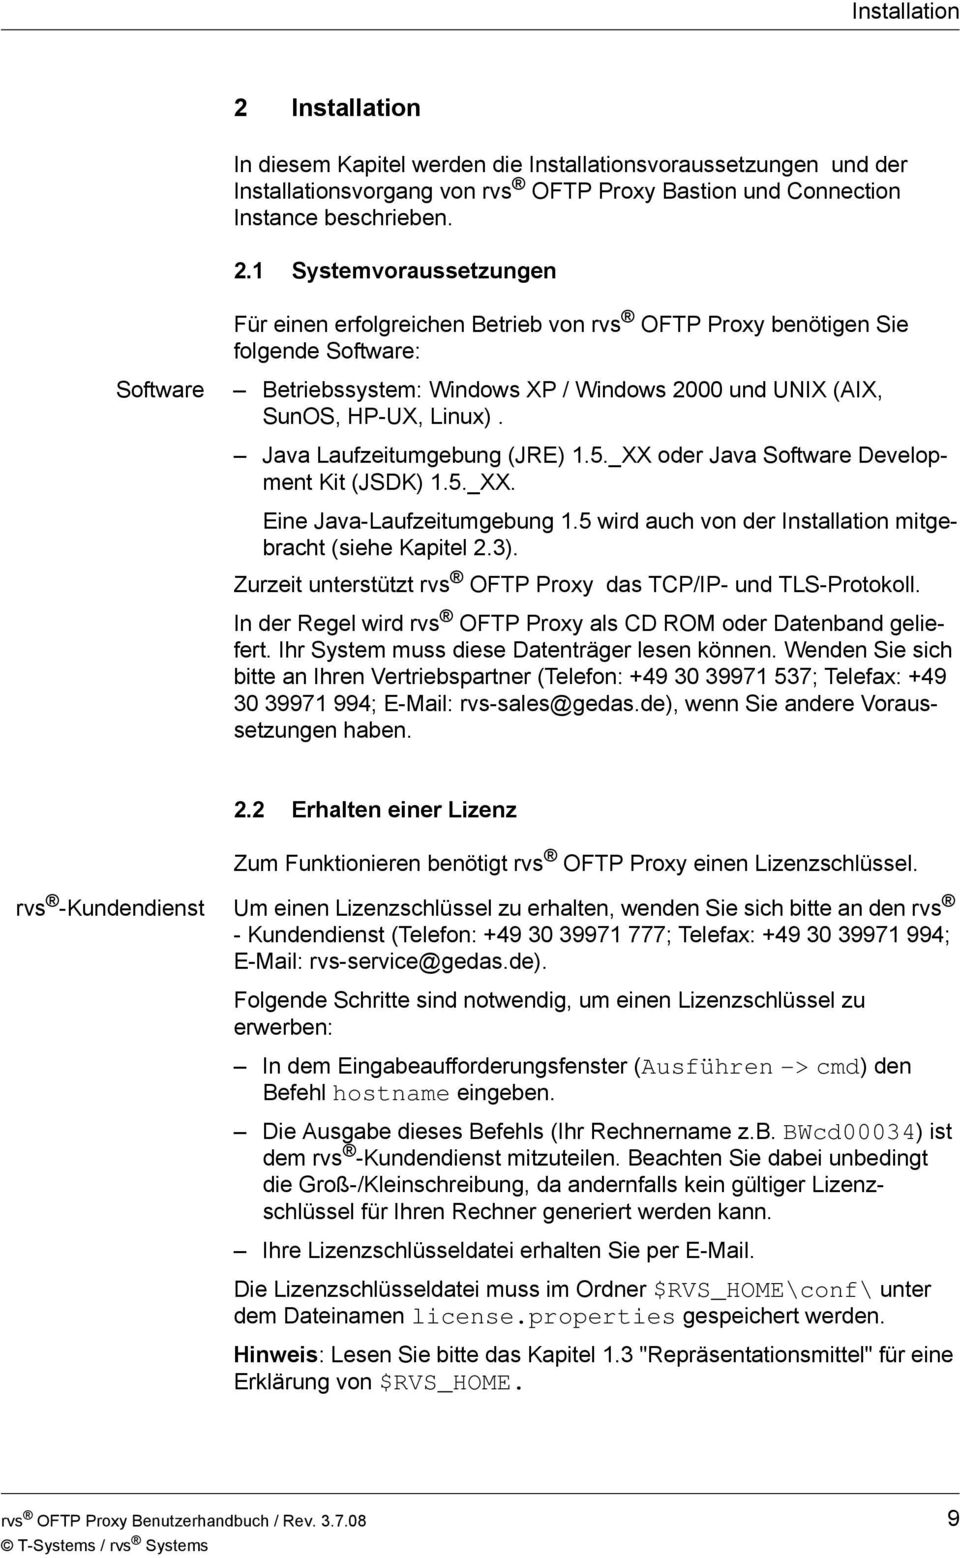 1 Systemvoraussetzungen Für einen erfolgreichen Betrieb von rvs OFTP Proxy benötigen Sie folgende Software: Software Betriebssystem: Windows XP / Windows 2000 und UNIX (AIX, SunOS, HP-UX, Linux).